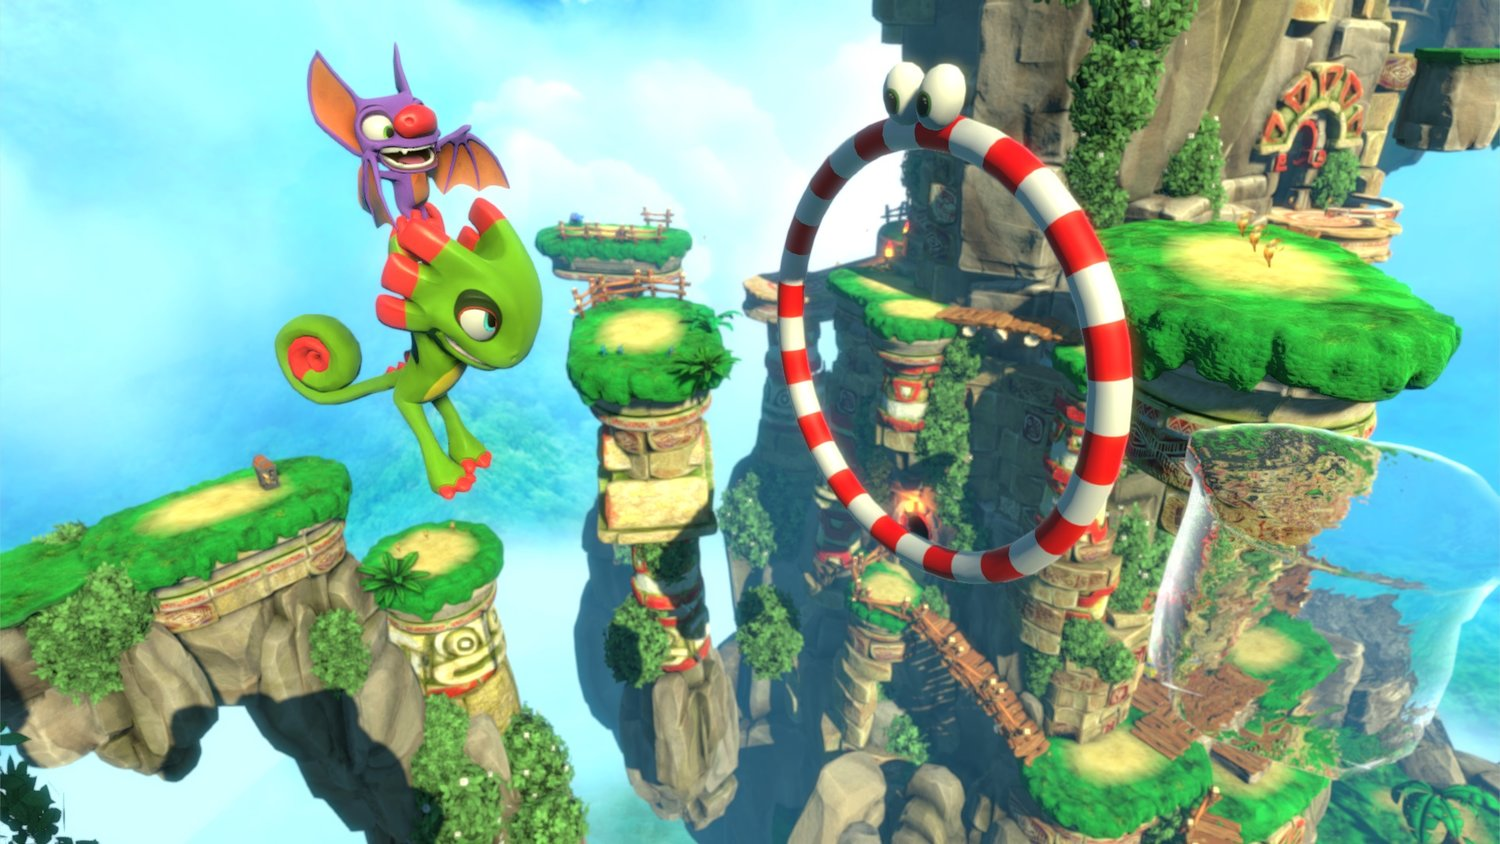 JonTron Removed From YOOKA-LAYLEE Following Controversial Remarks